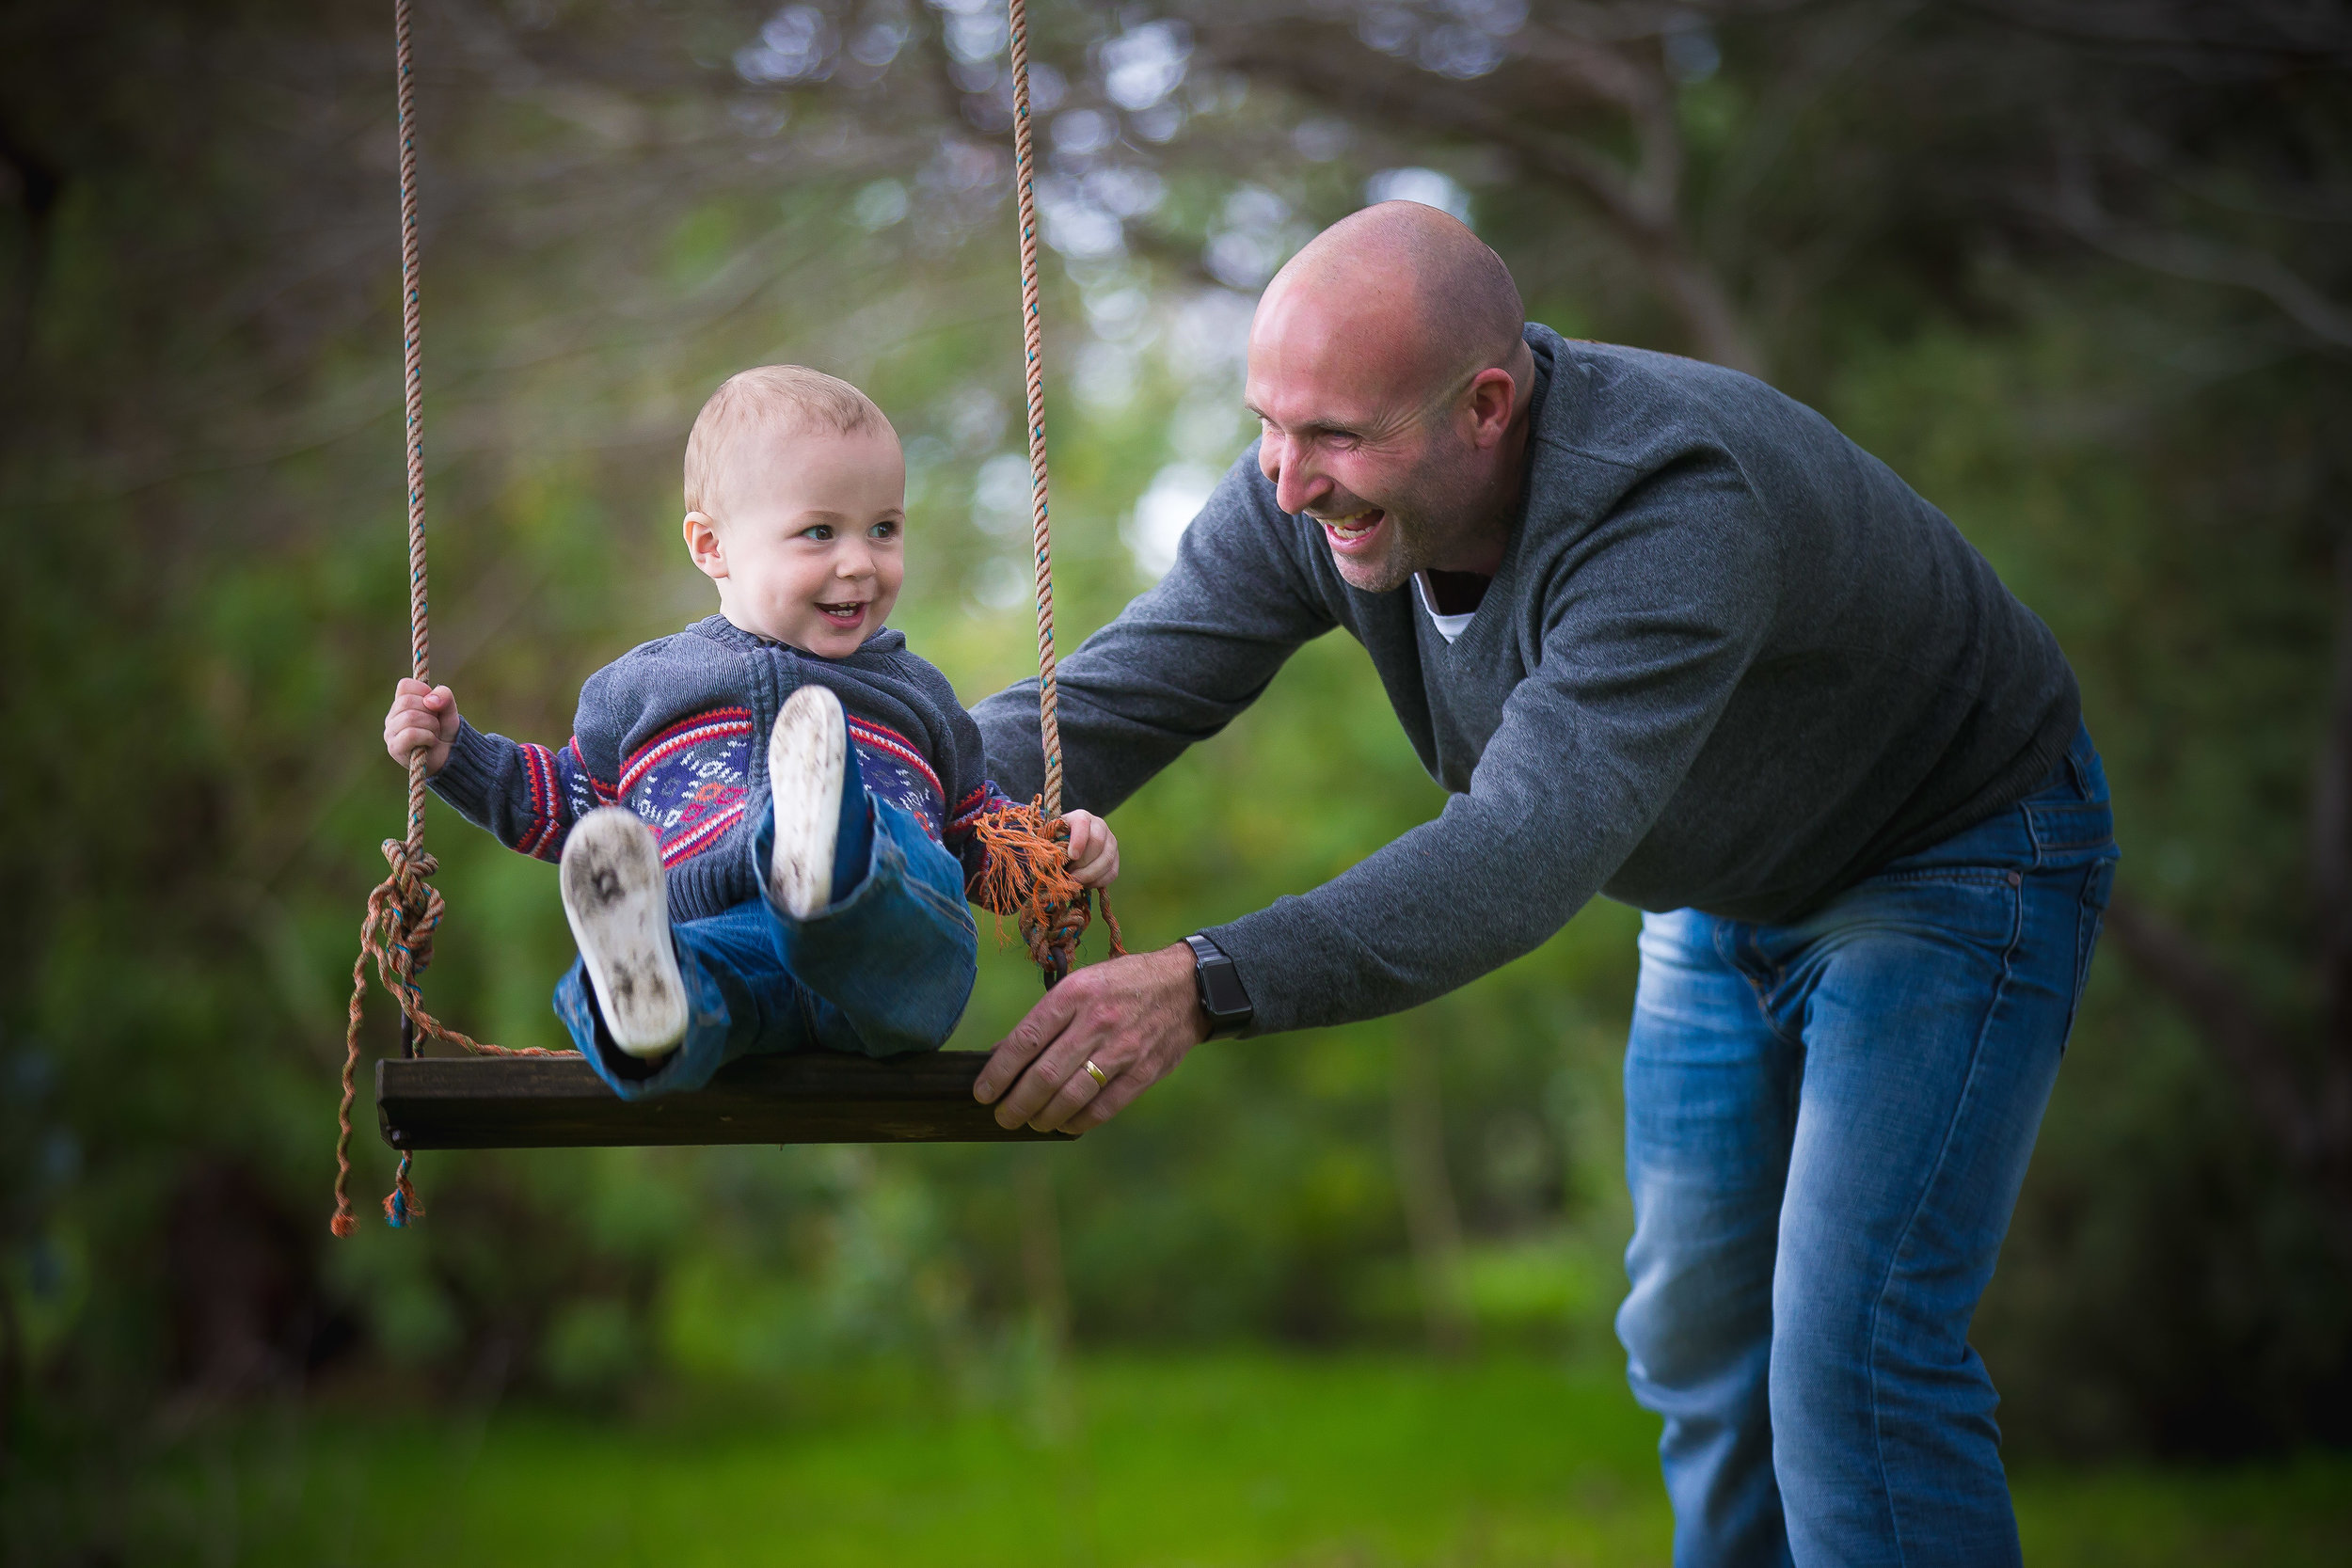 Premier Family Portrait Photographer Kurt Nigg captures the most golden moments in your life and puts them into a Time Capsule